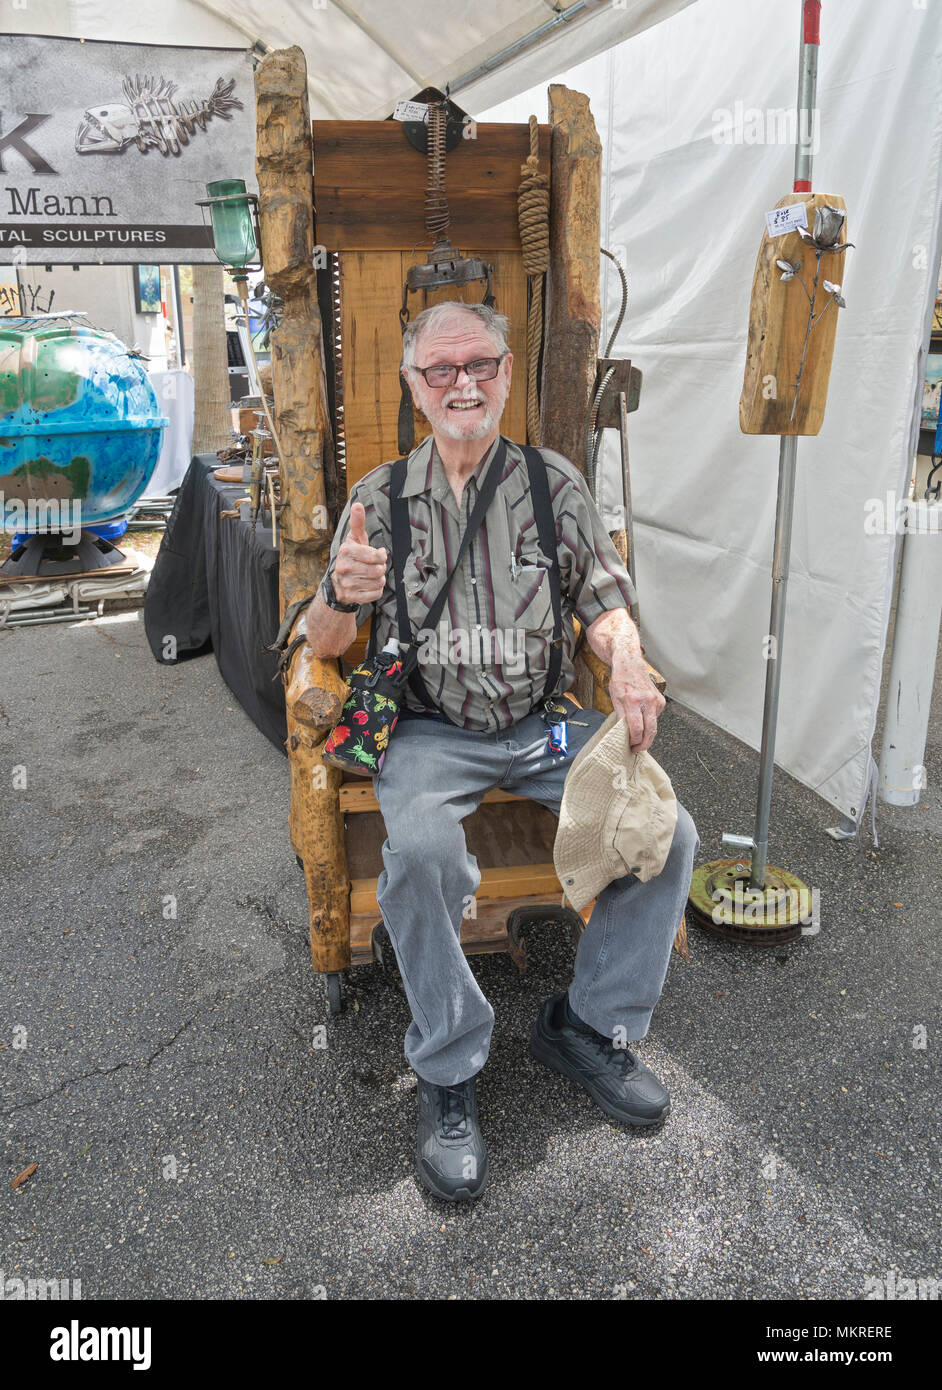 Spring Festival in Gainesville Florida features a variety of expression and experiences. Man tries out a Wooden Electric Chair creation for sale. & Spring Festival in Gainesville Florida features a variety of ...